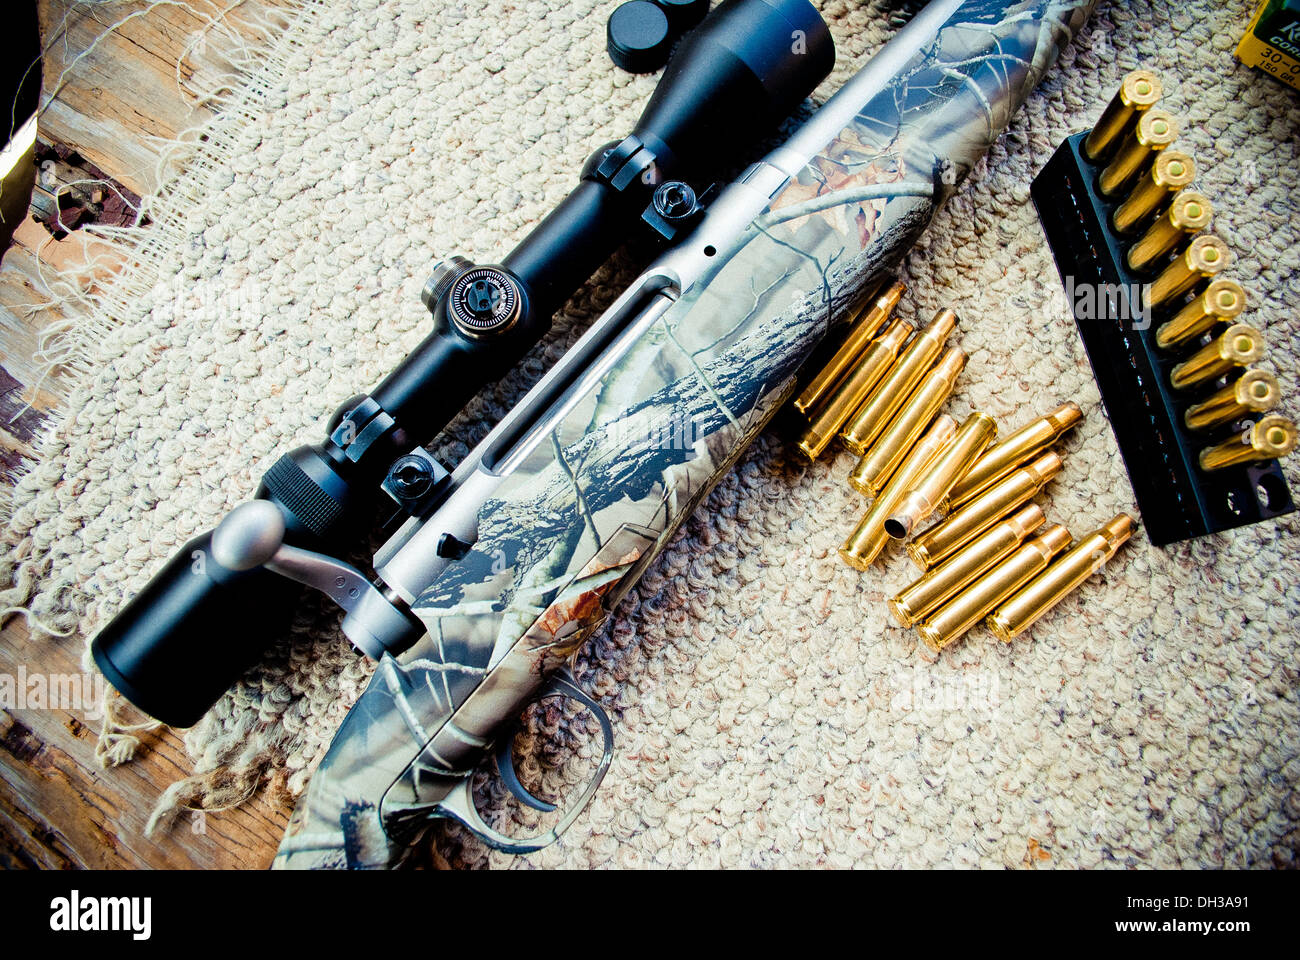 Rifle and bullets. - Stock Image